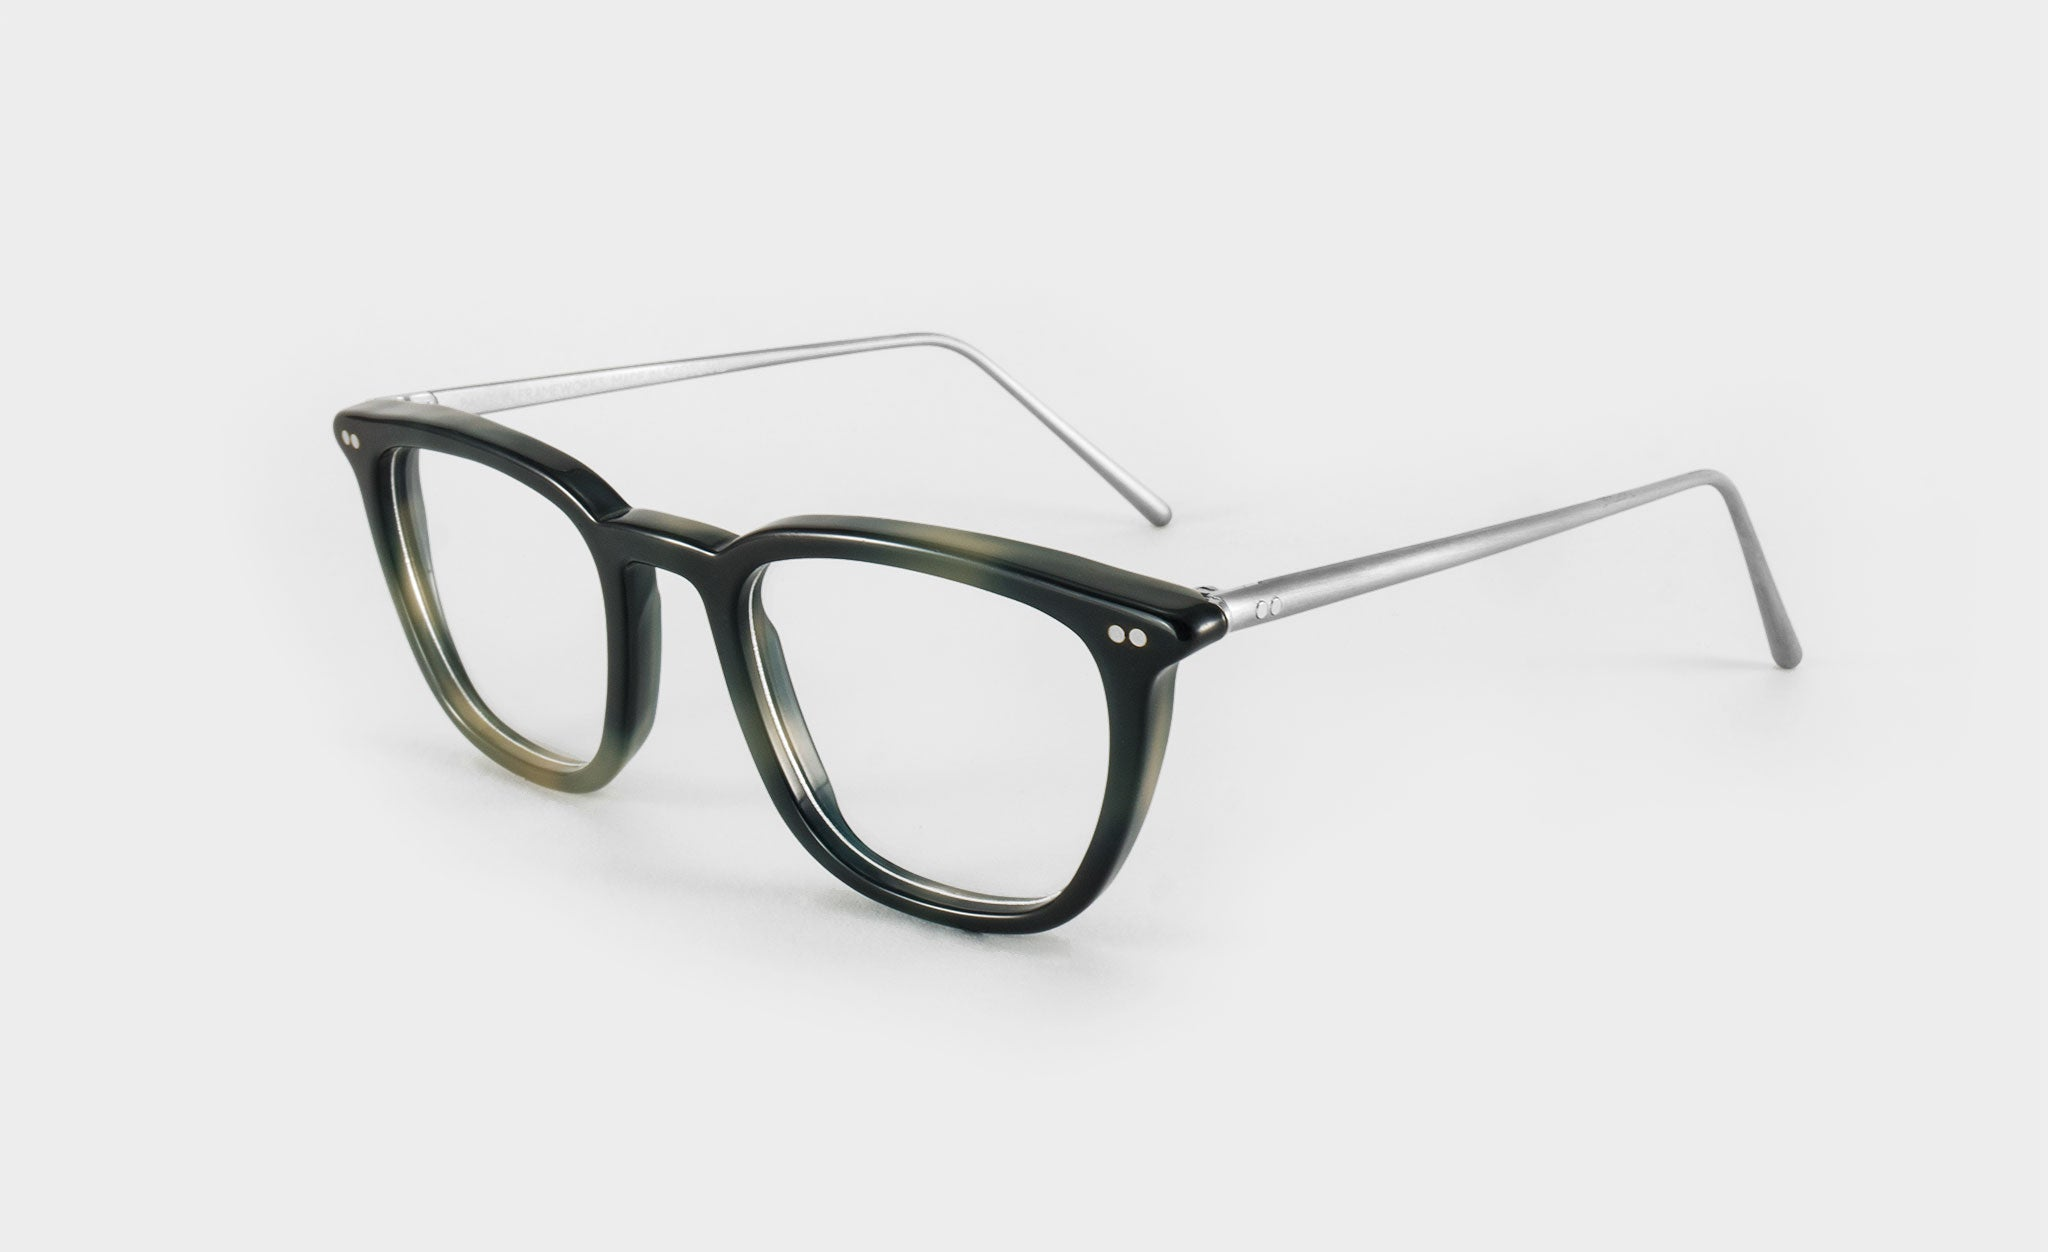 Optical glasses frame b loc side view